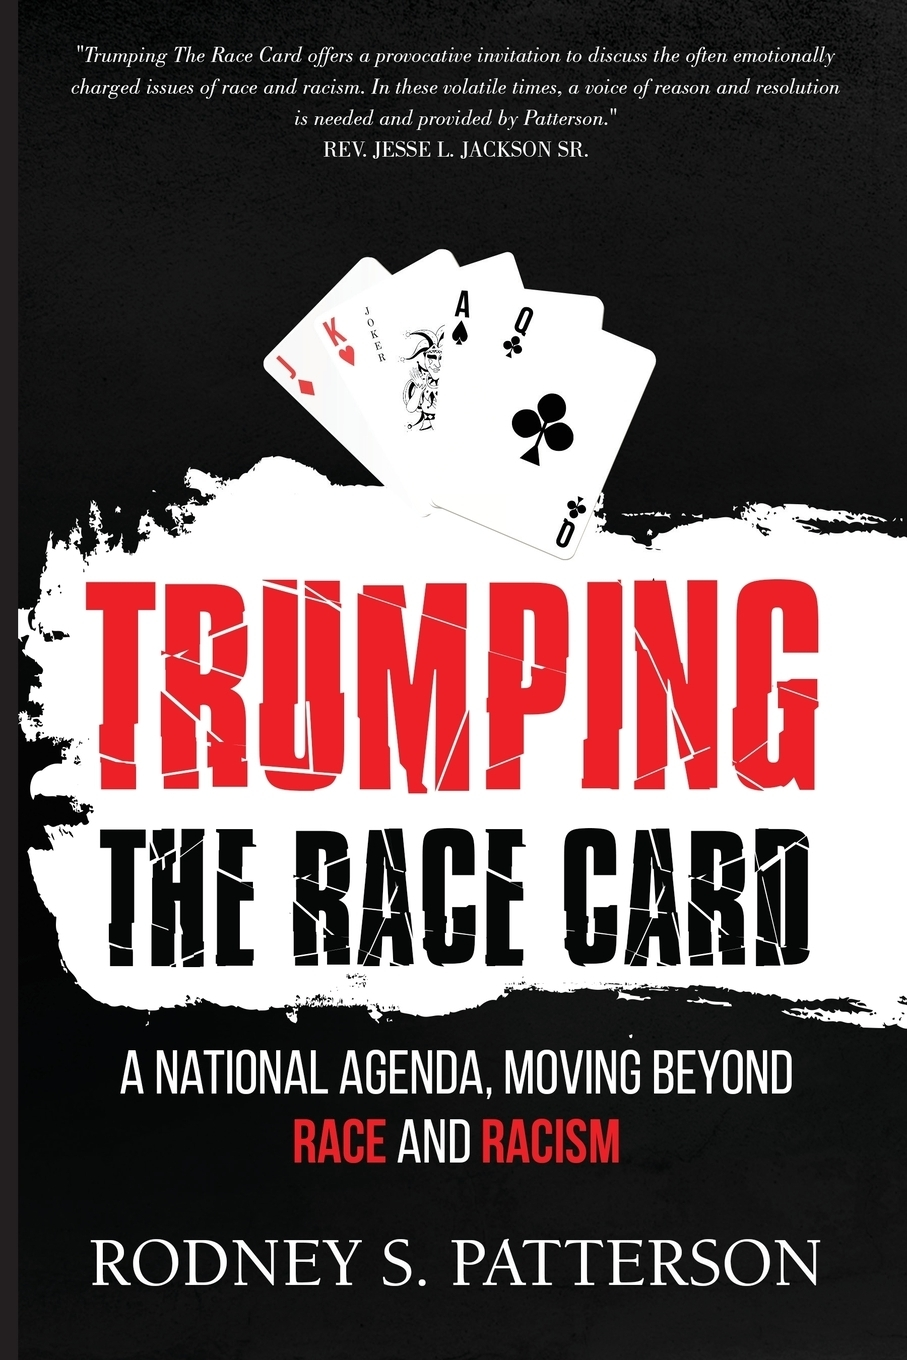 Rodney S. Patterson Trumping the Race Card. A National Agenda, Moving Beyond and Racism